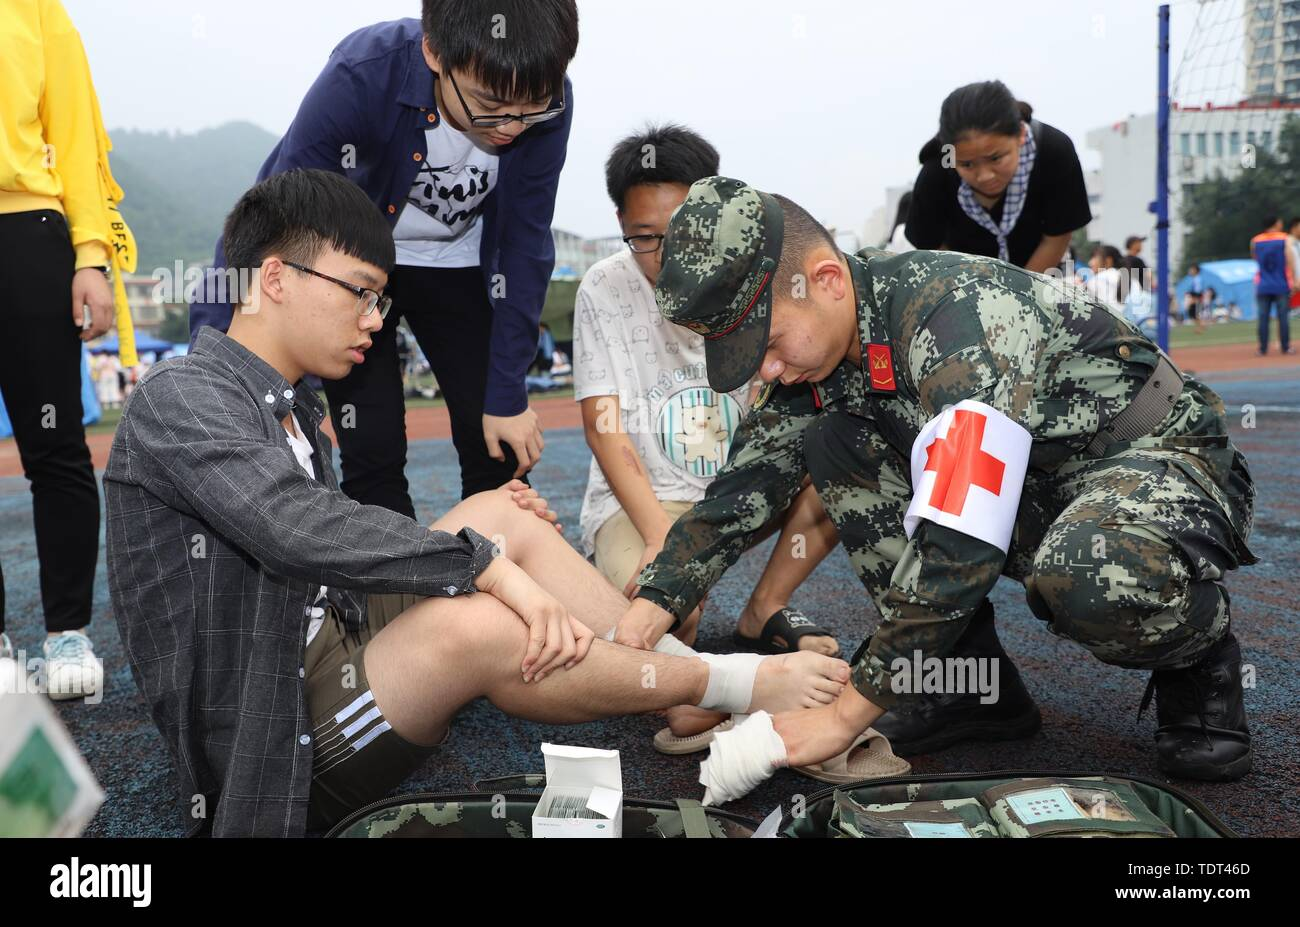 Changning, China's Sichuan Province. 18th June, 2019. A soldier binds up a student's ankle at a middle school in Gongxian County of Yibin City, southwest China's Sichuan Province, June 18, 2019. Thirteen people died and 199 were injured after a 6.0-magnitude earthquake hit southwest China's Sichuan Province at 10:55 p.m. Monday, the Ministry of Emergency Management said Tuesday. Credit: He Junwei/Xinhua/Alamy Live News - Stock Image